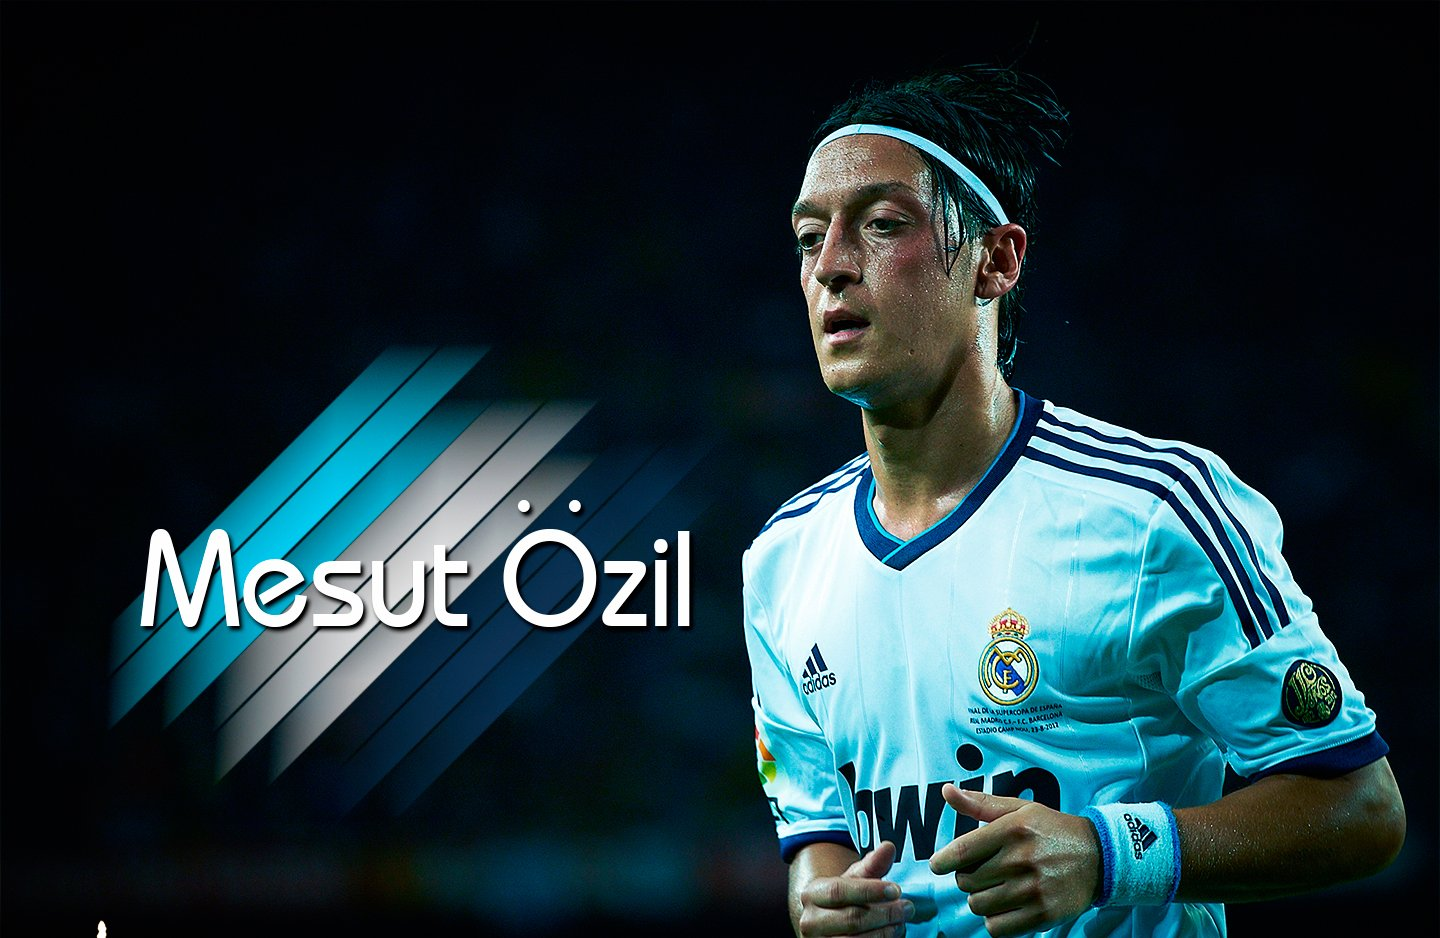 Wallpapers HD 2014 Mesut Ozil 2013 Wallpapers HD Live HD Mesut Ozil 1440x938